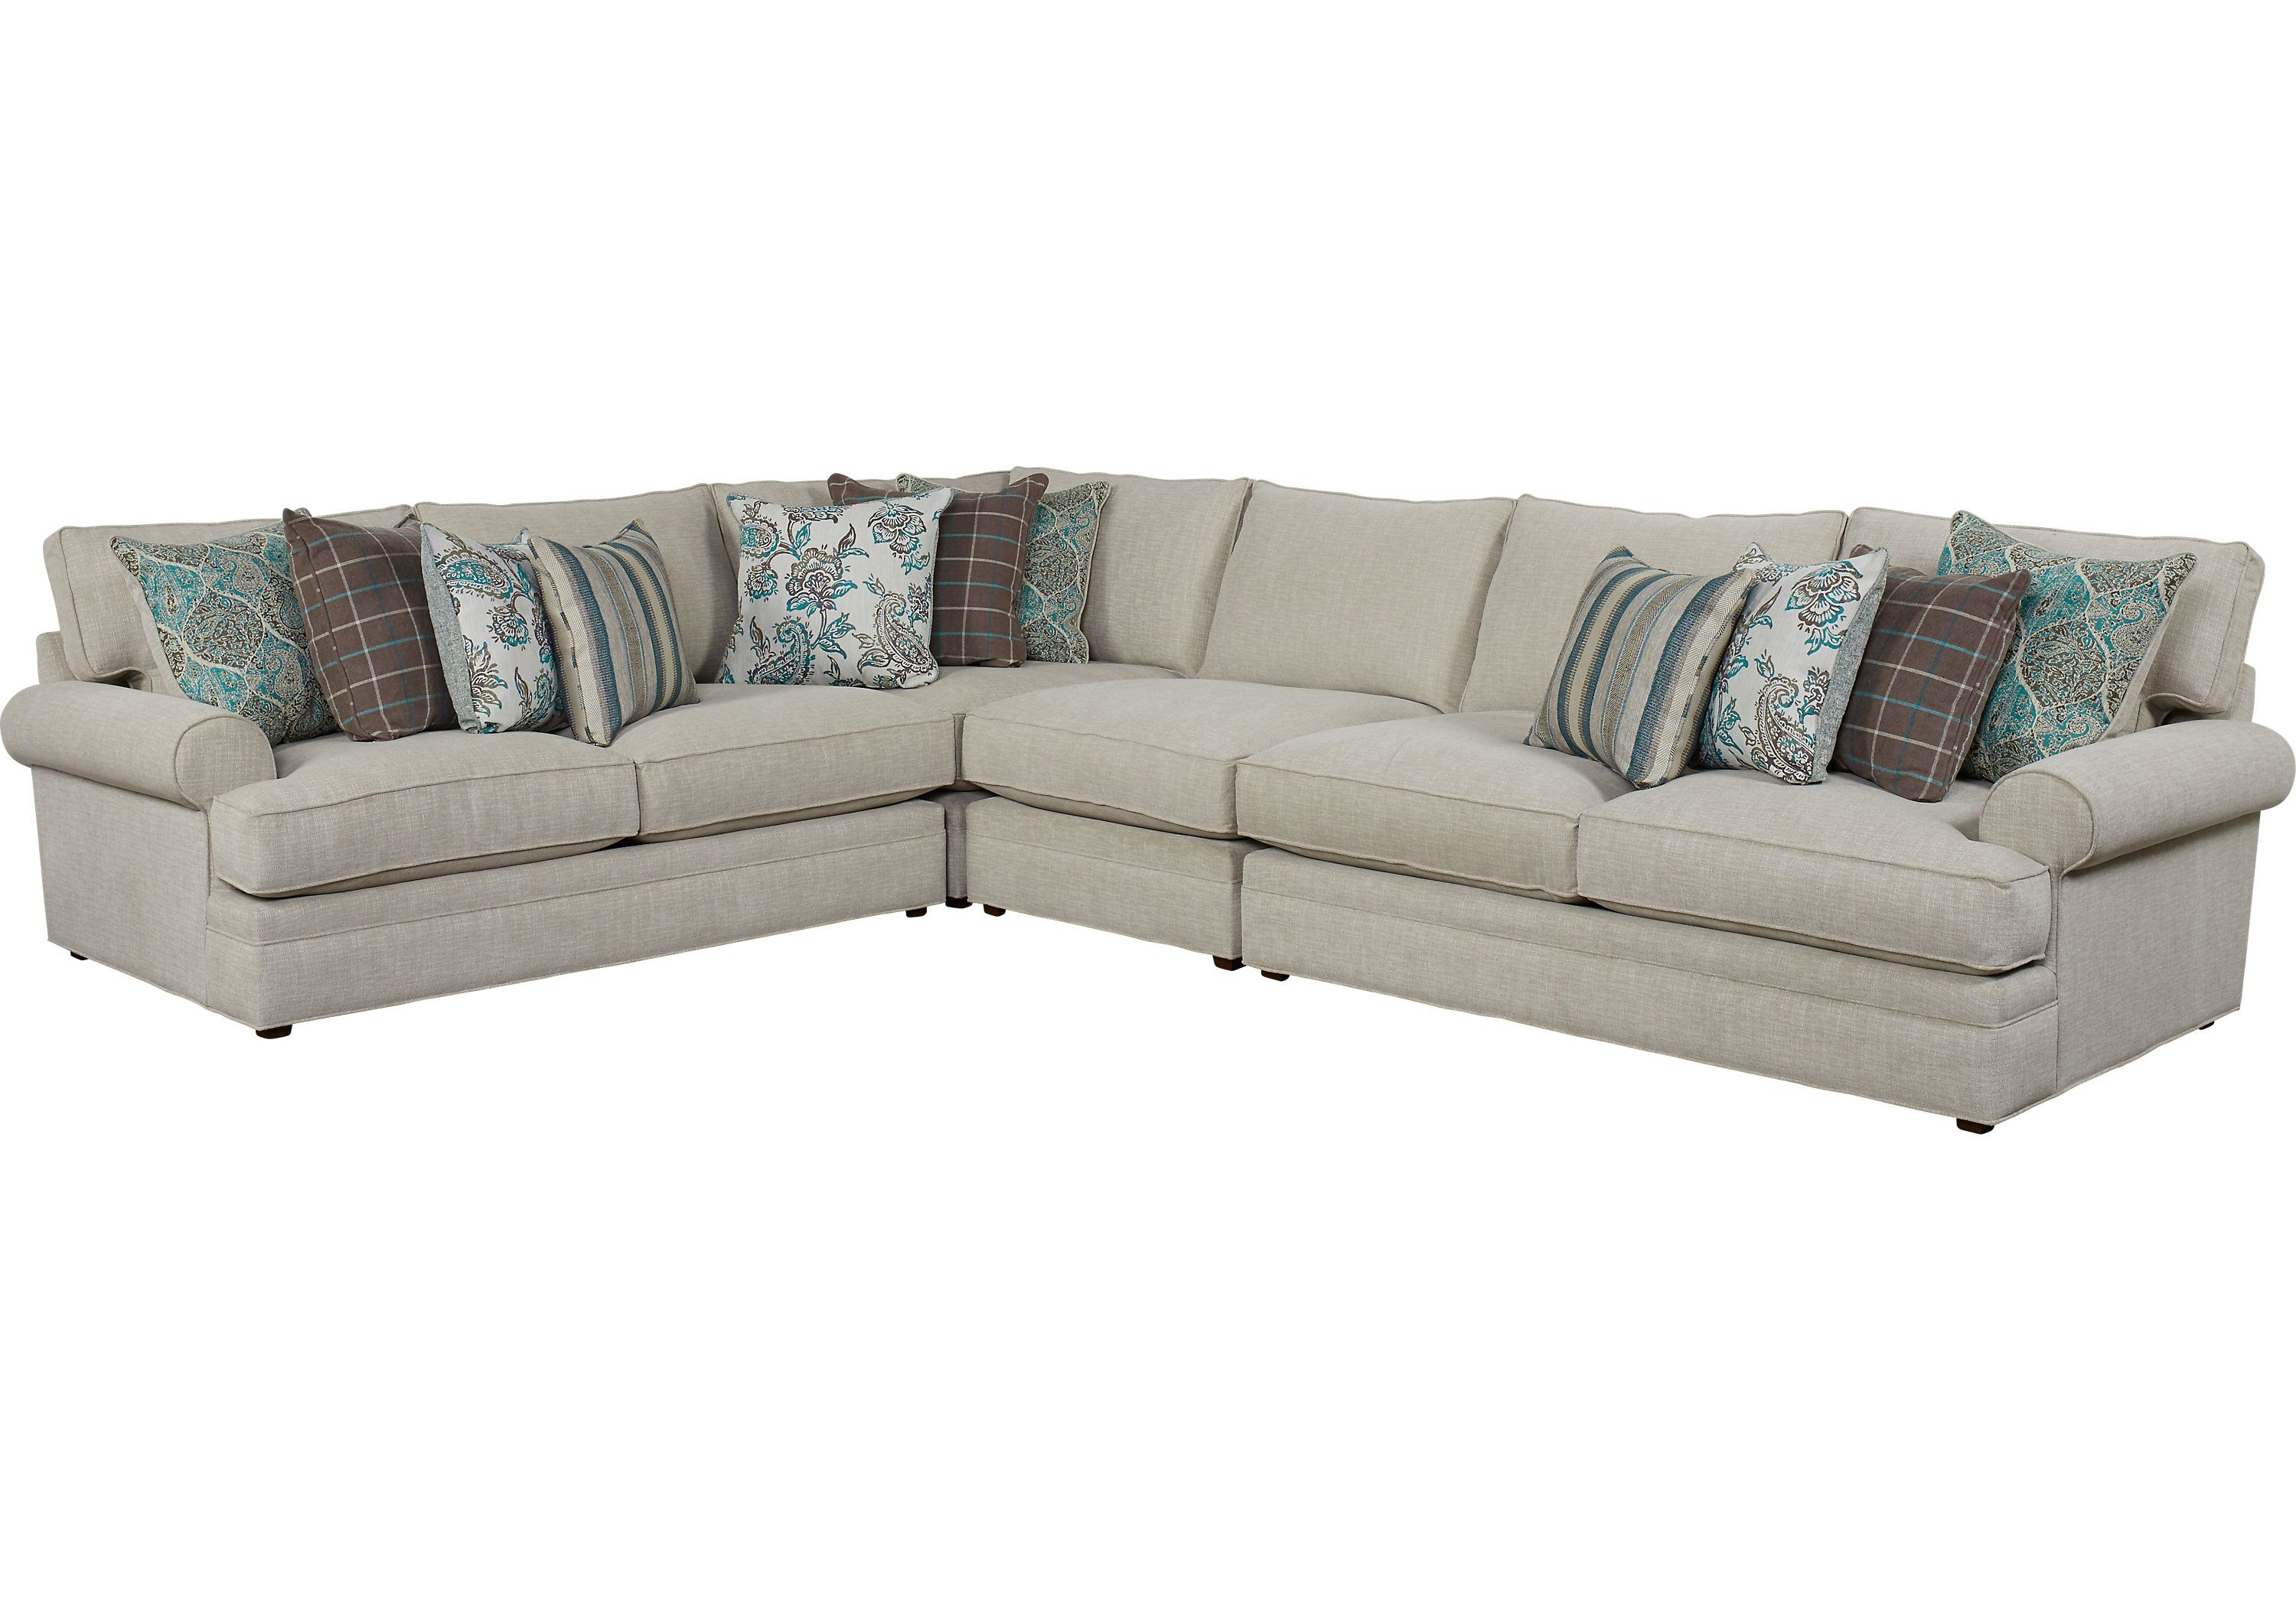 Cindy Crawford Home Lincoln Heights Stone 4 Pc Sectional 2488 0